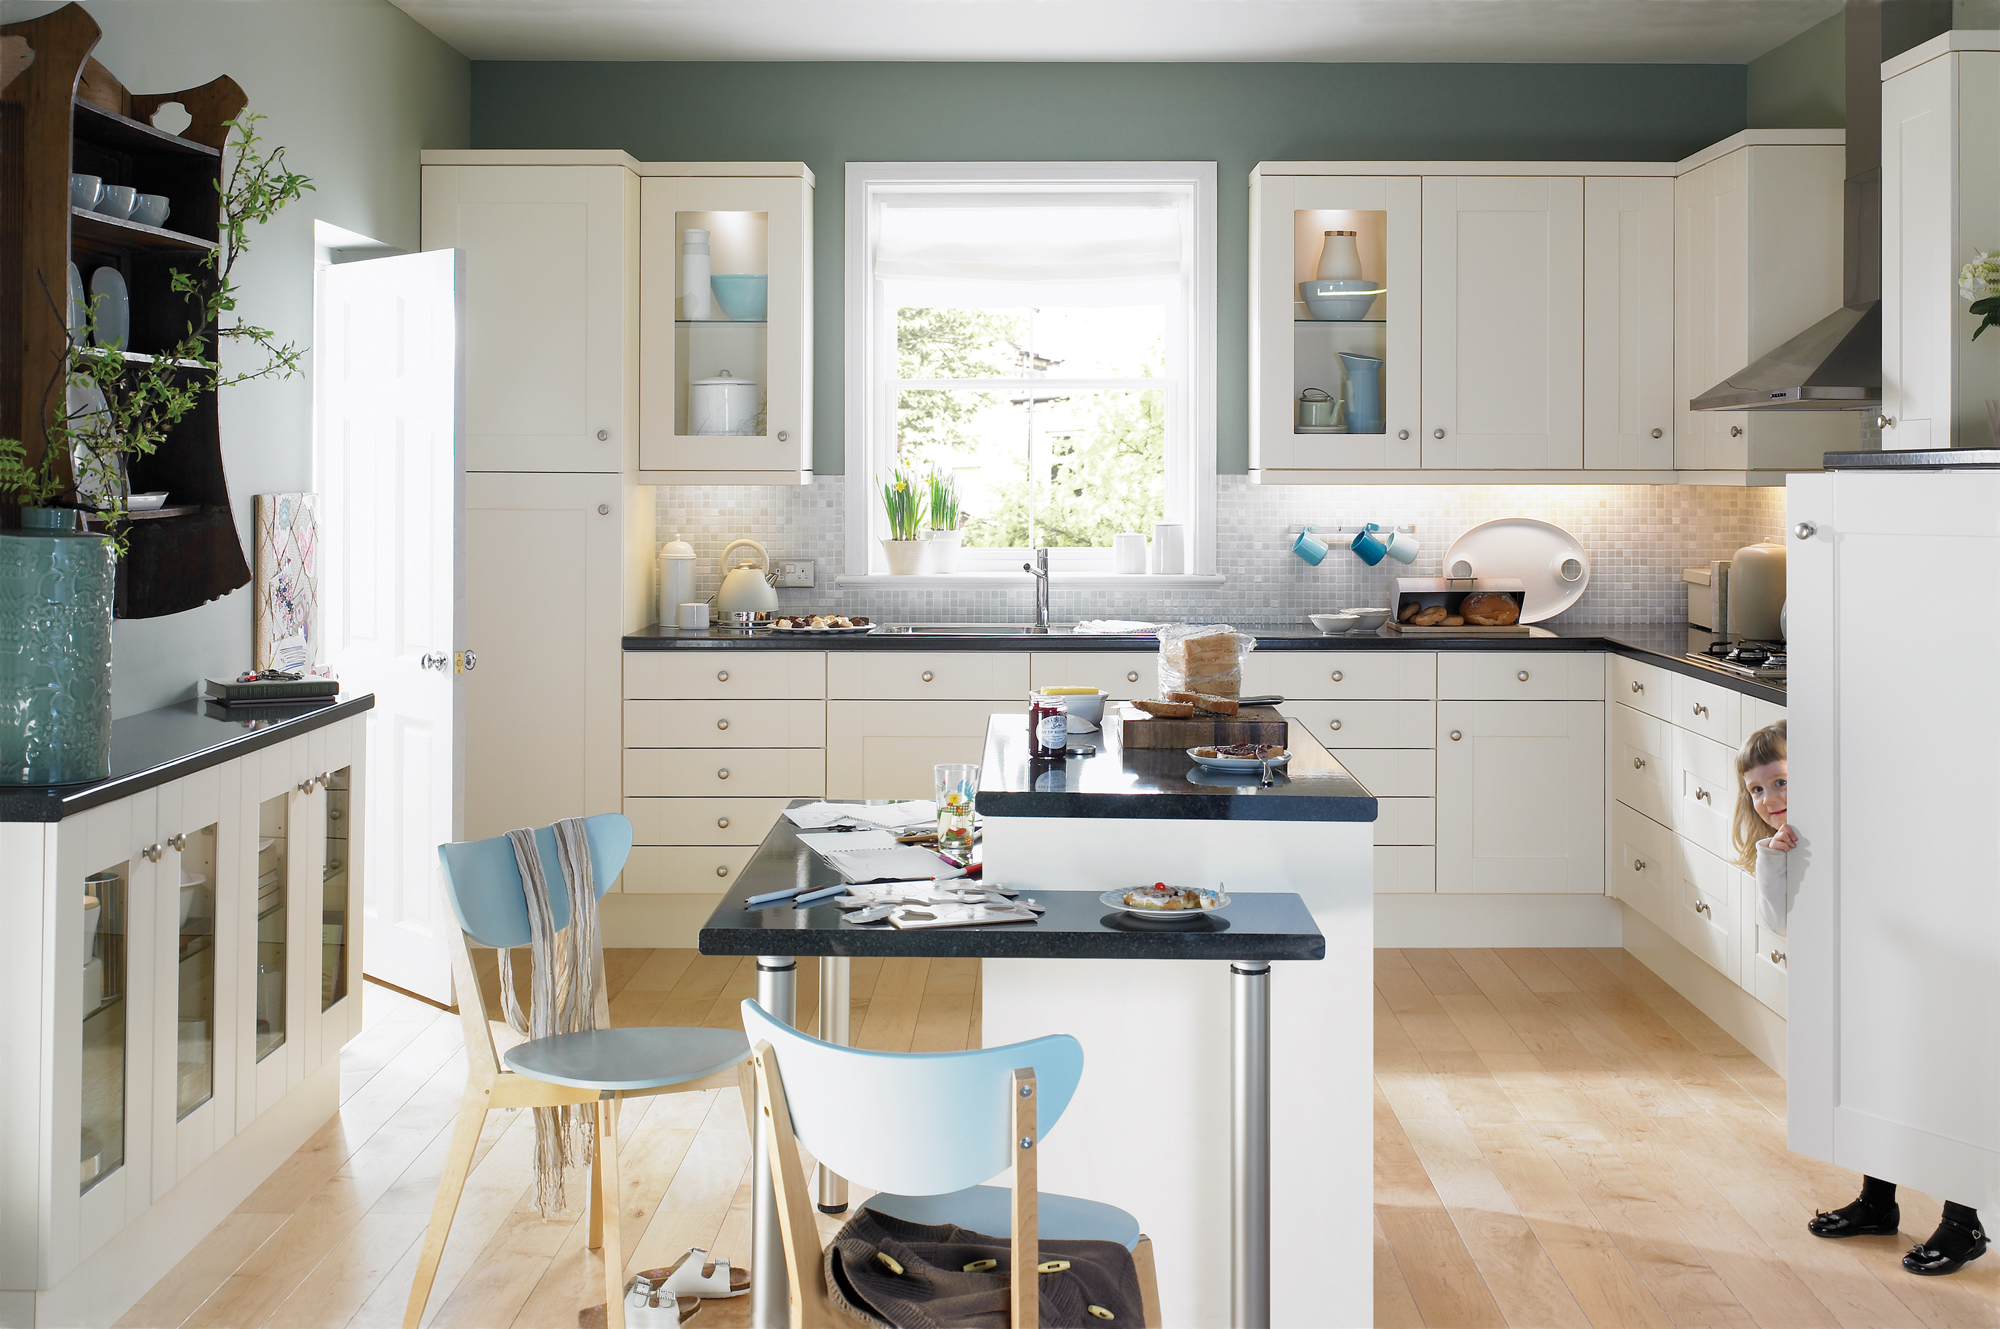 Kitchens | Checkers of Churchtown Southport